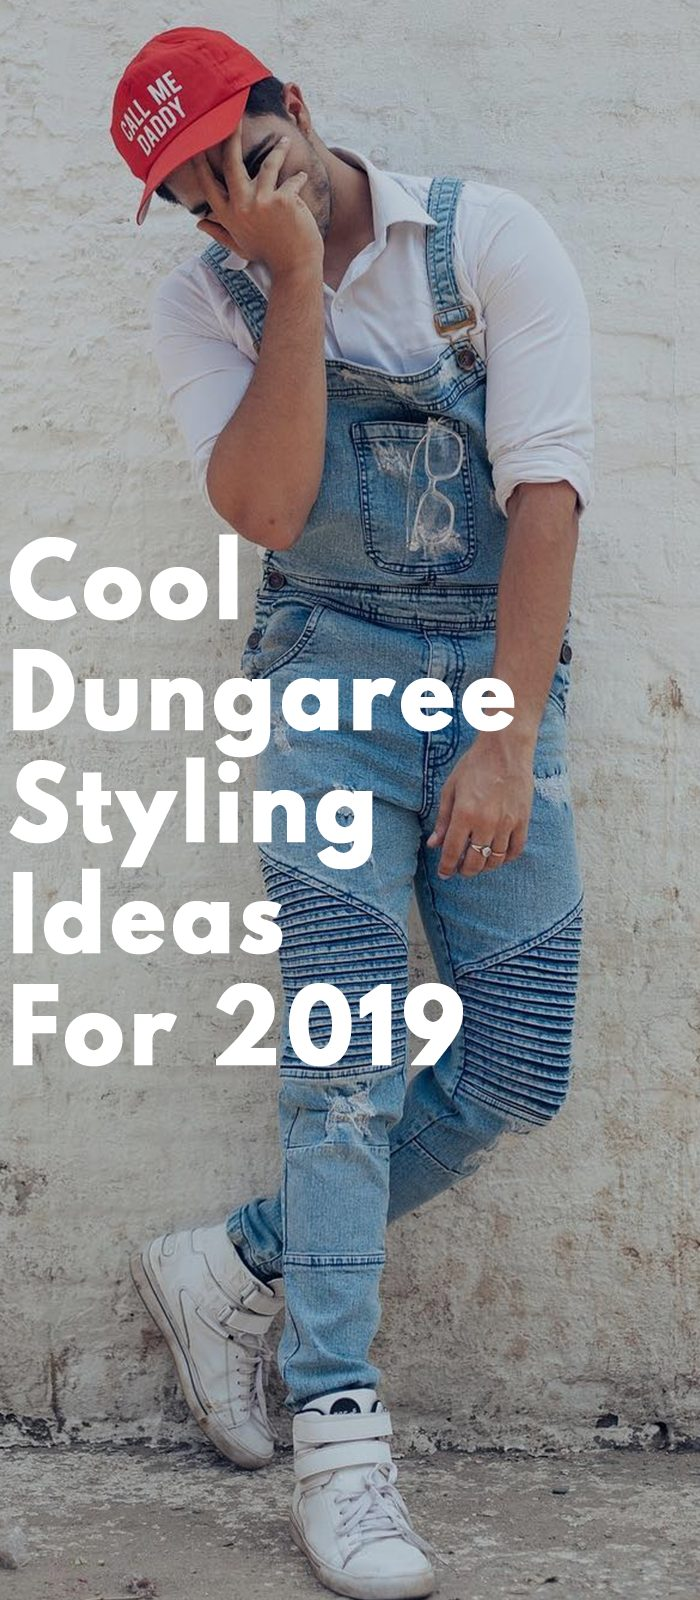 Cool Dungaree Styling Ideas For Men